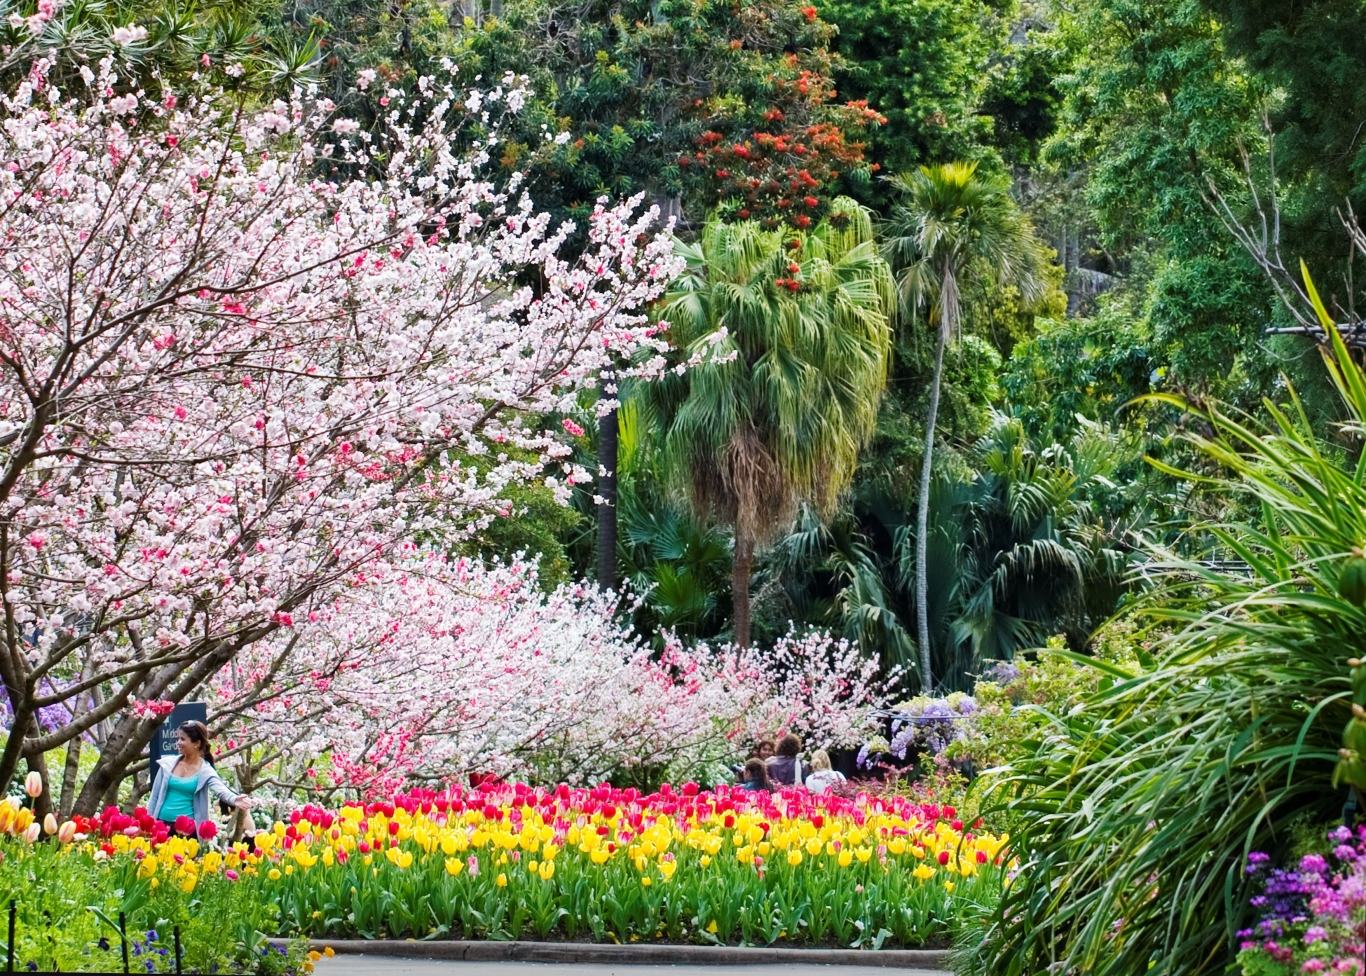 Guided Walks At The Royal Botanic Garden Sydney Living Museums